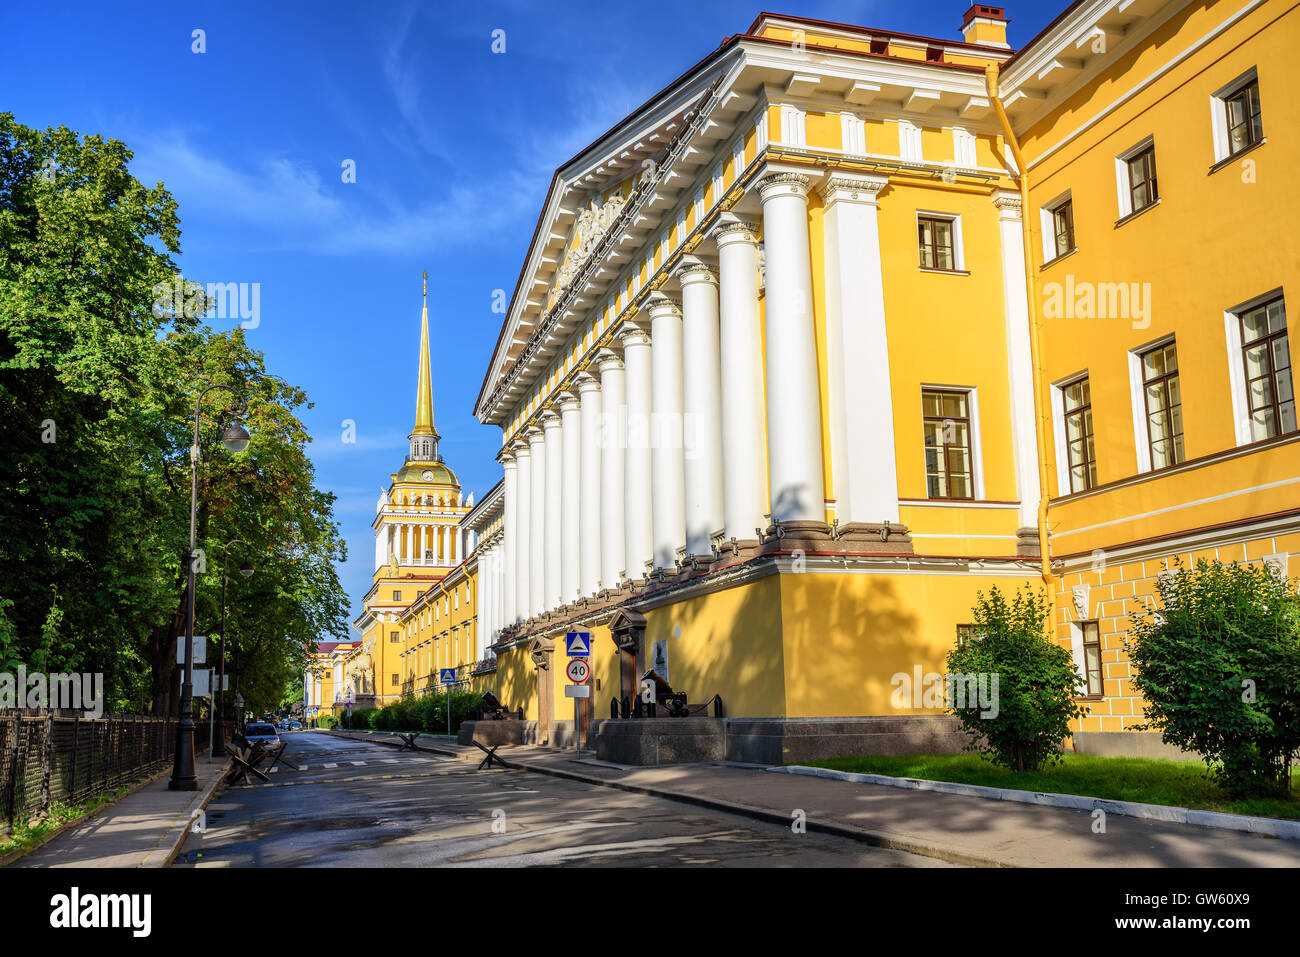 Neoclassical Admiralty Building with white greek columns and golden spire is iconic view in St Petersburg, Russia Stock Photo